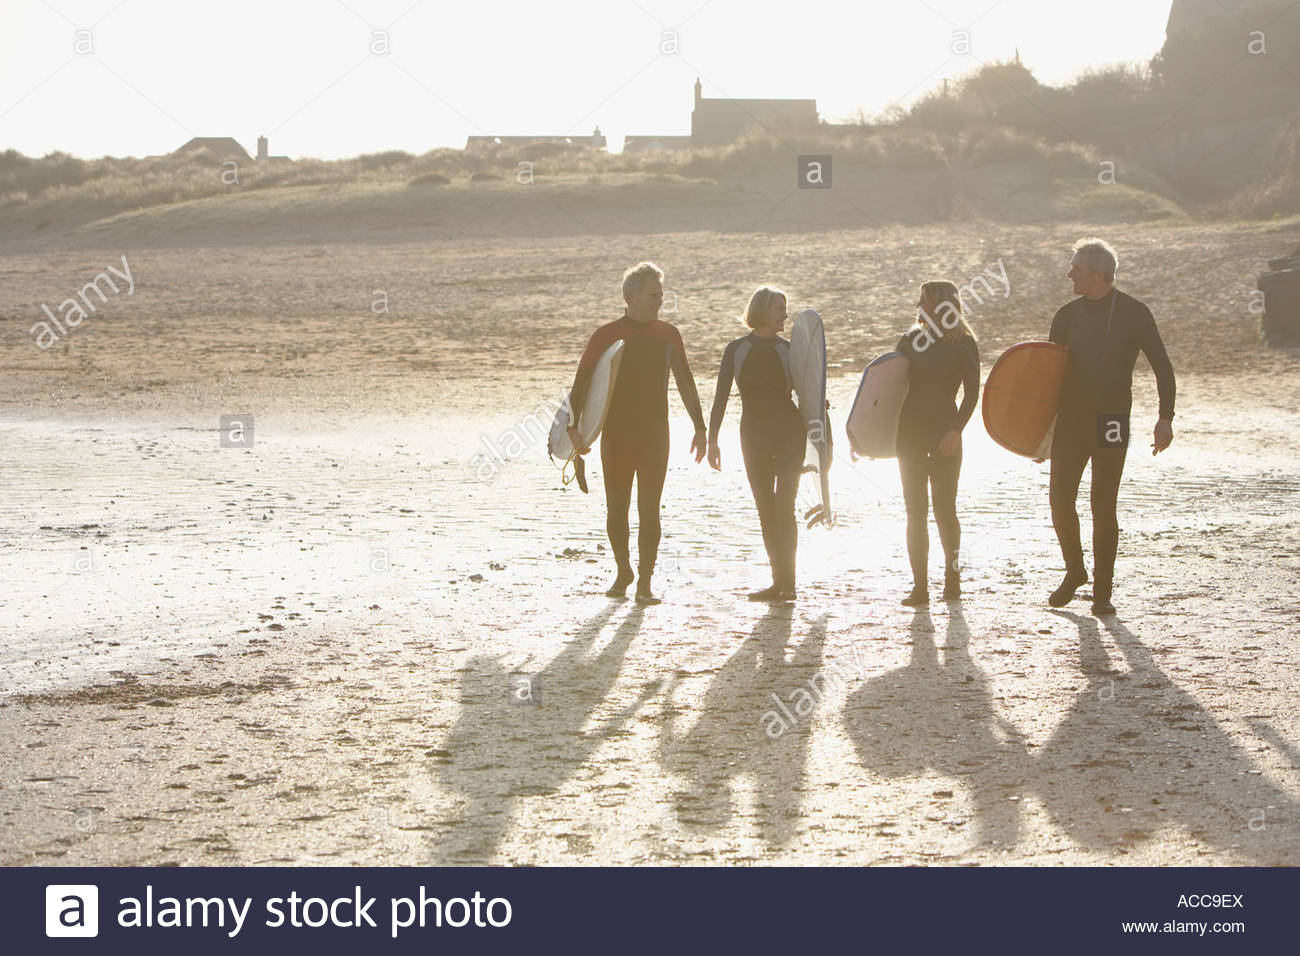 Four adults walking on the beach with surfboards - Stock Image